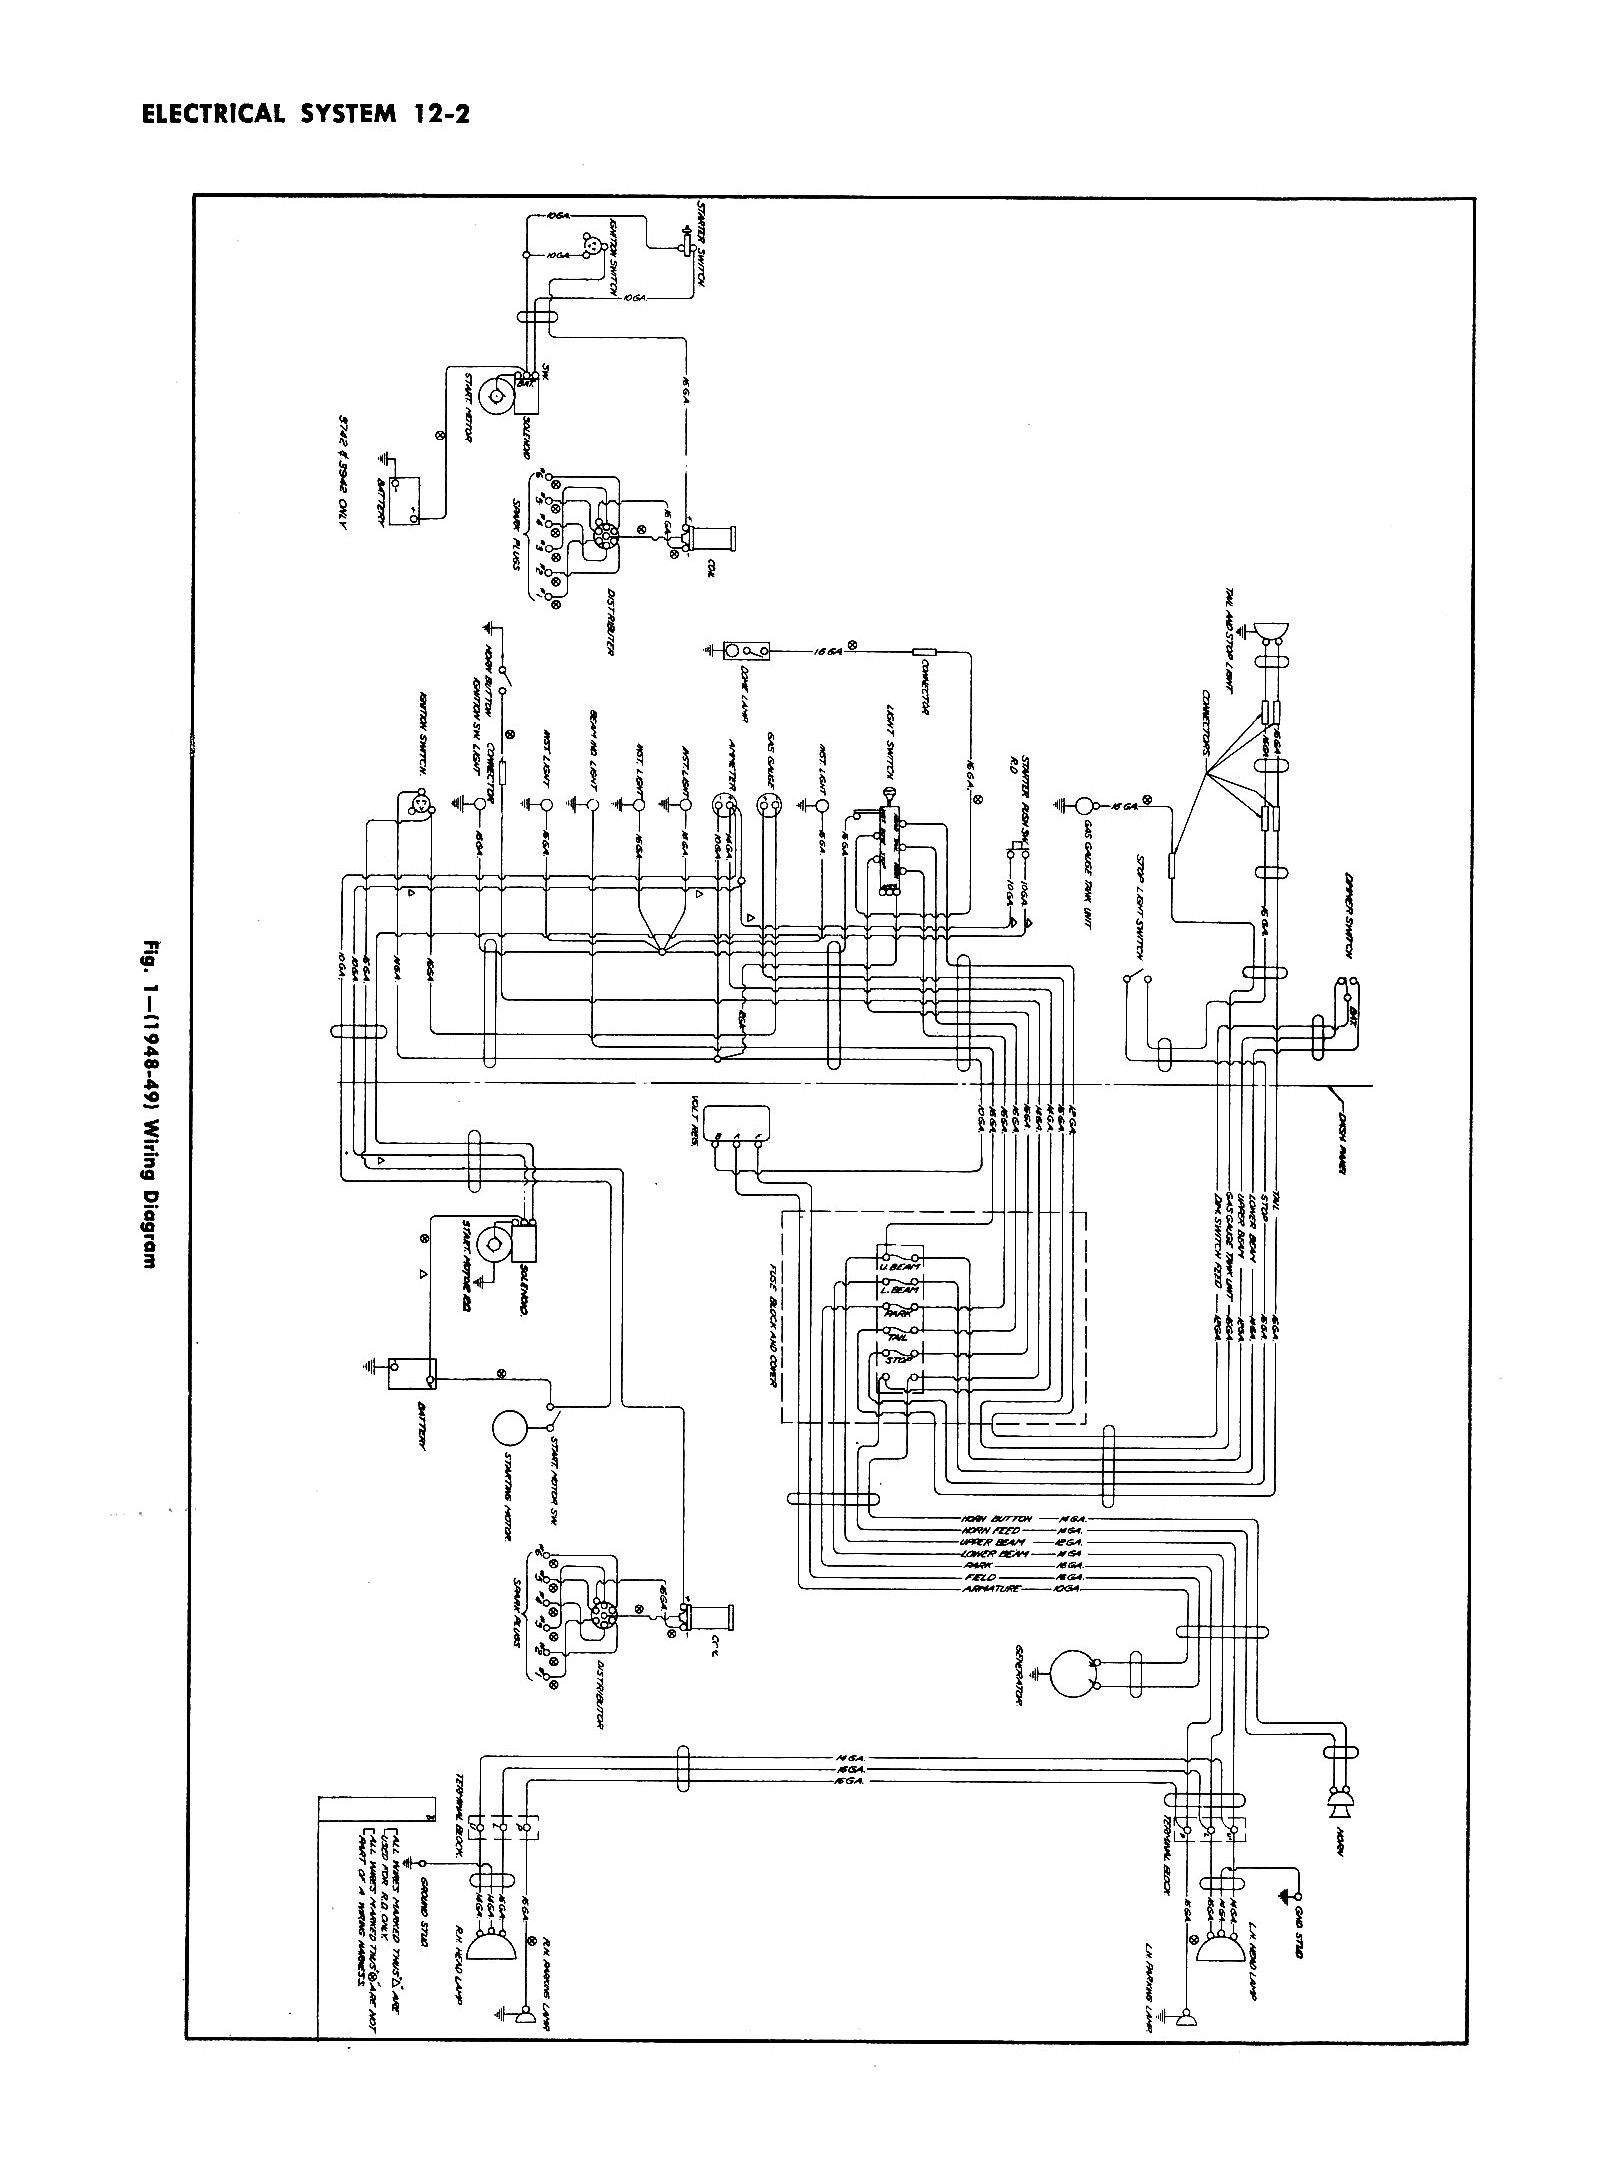 Chevy Wiring Diagrams Chevrolet Engine Diagram 1948 Chevrolet Wiring Diagram